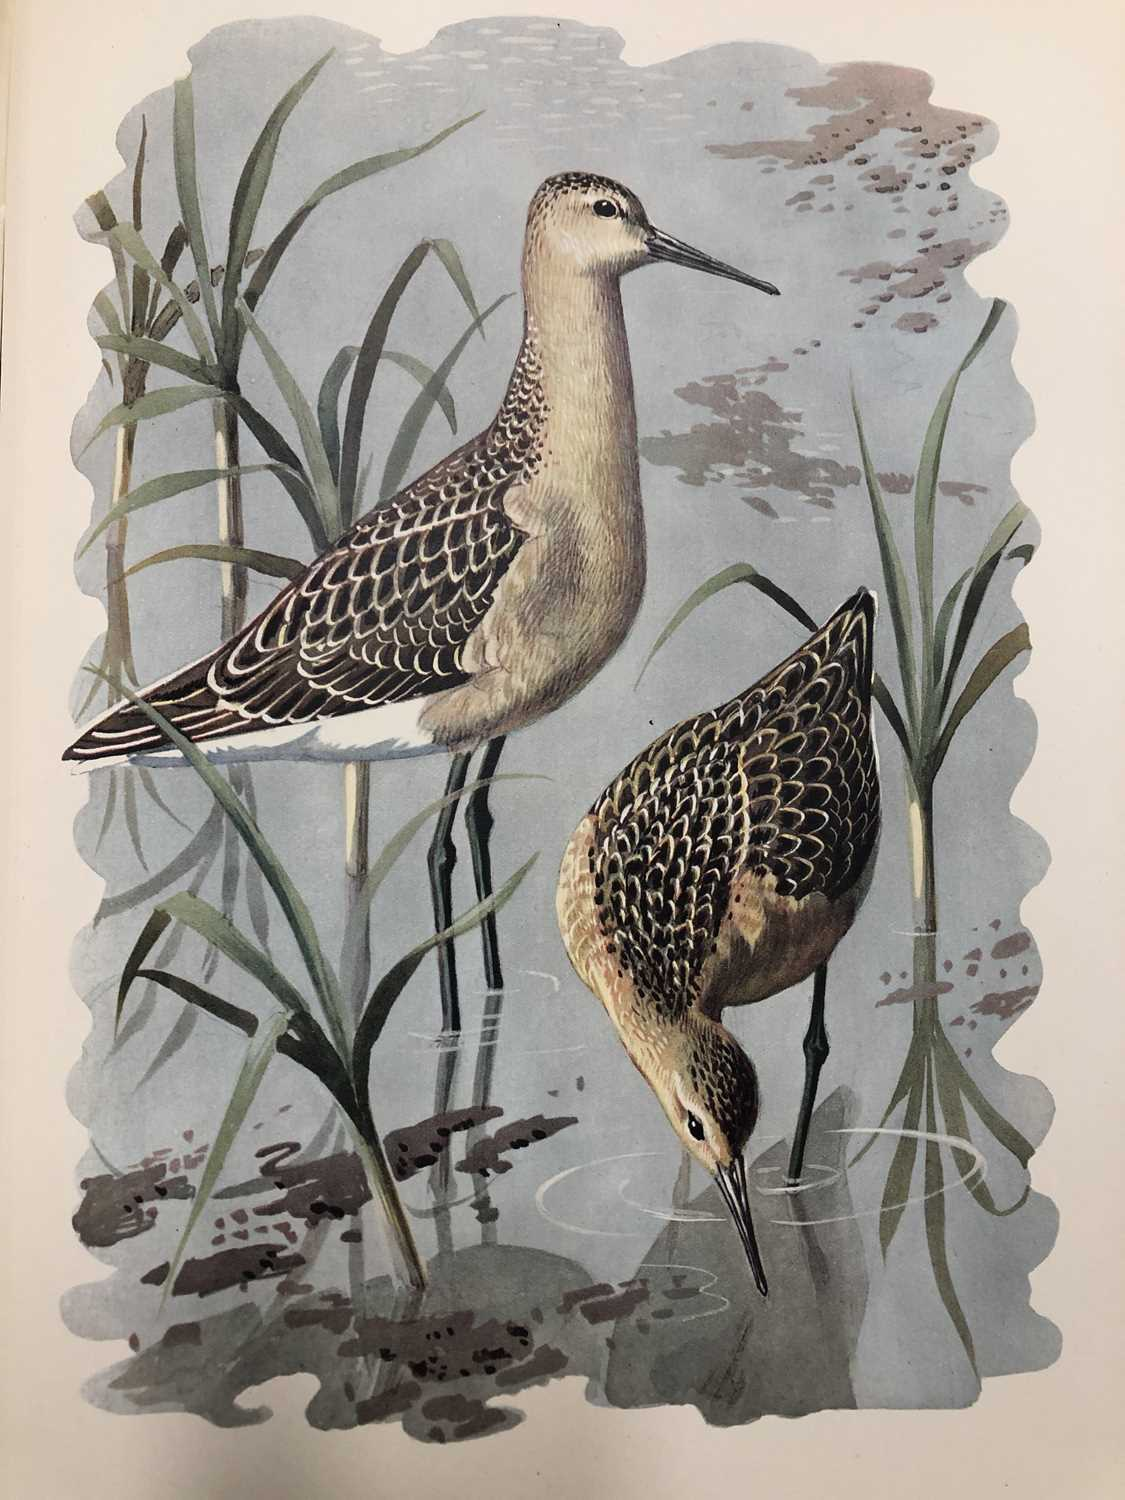 Charles Frederick Tunnicliffe OBE RA (1900-1979) Shorelands Summer Diary - Image 10 of 11